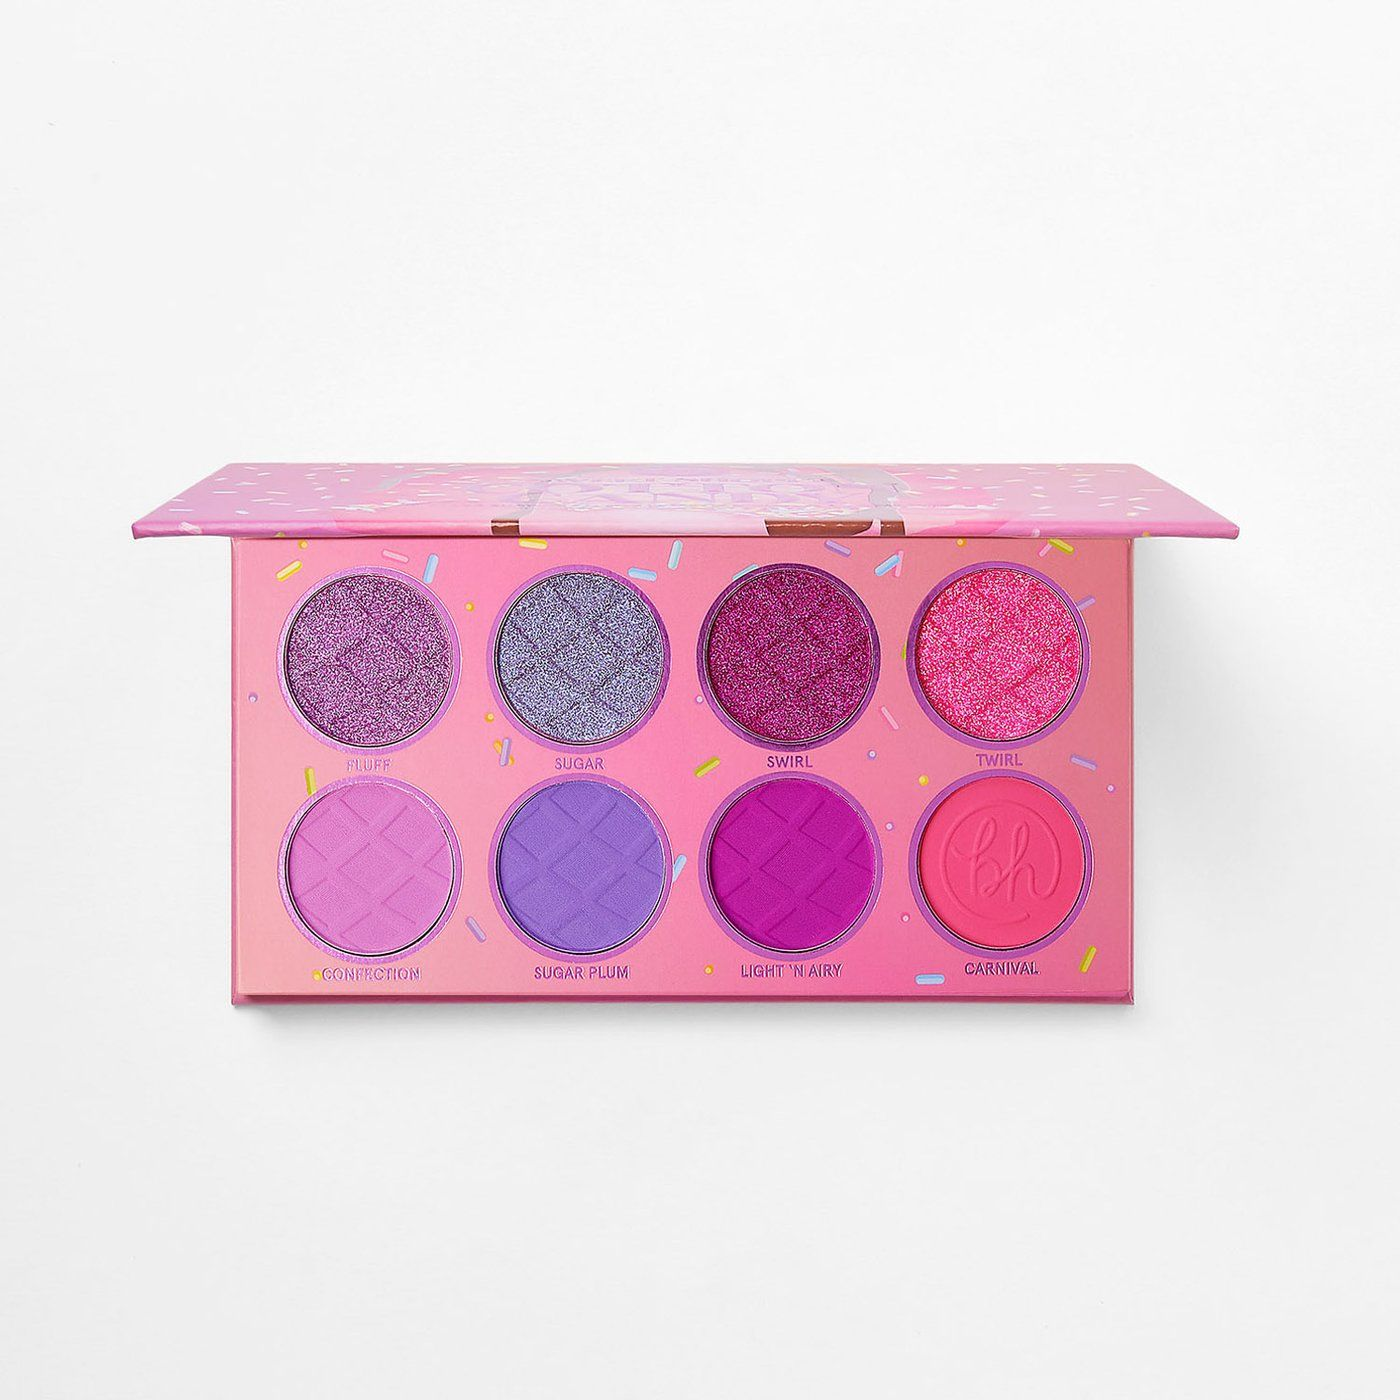 Cotton Candy in 2020 Affordable beauty products, Cotton